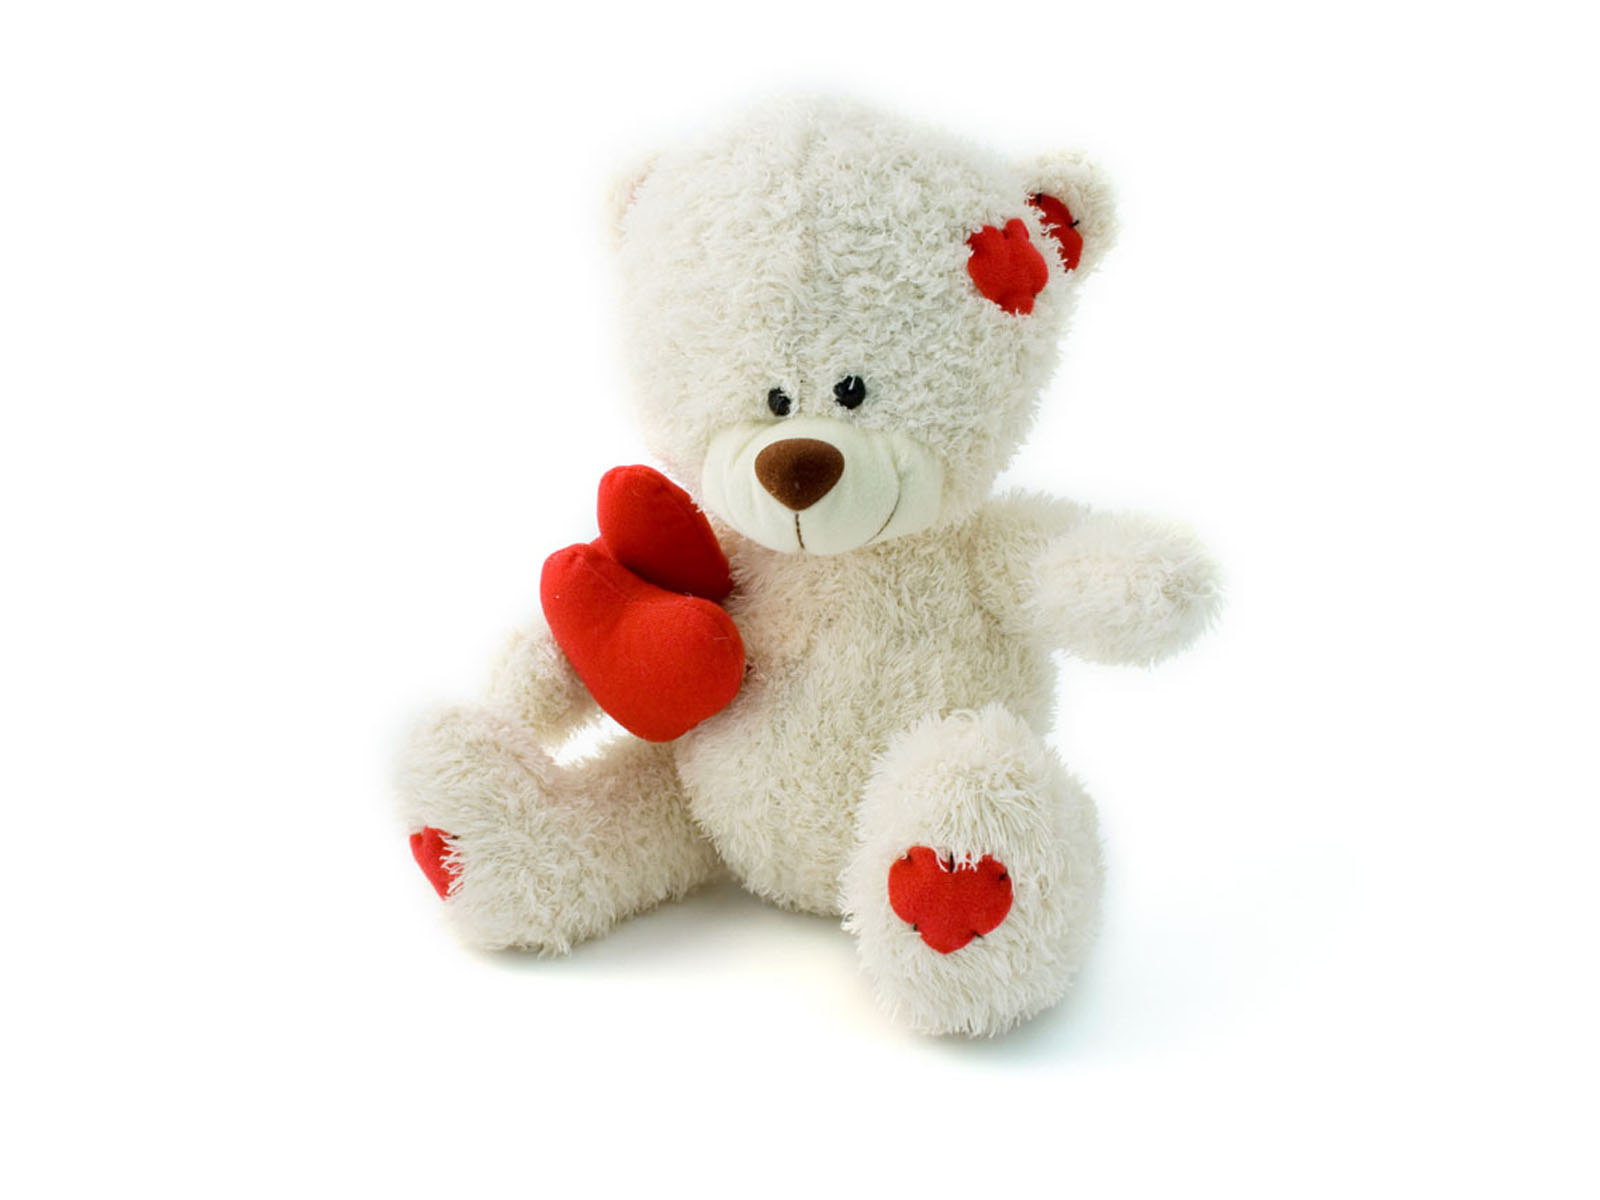 Wallpapers love teddy bear wallpapers love teddy bear wallpapers voltagebd Gallery